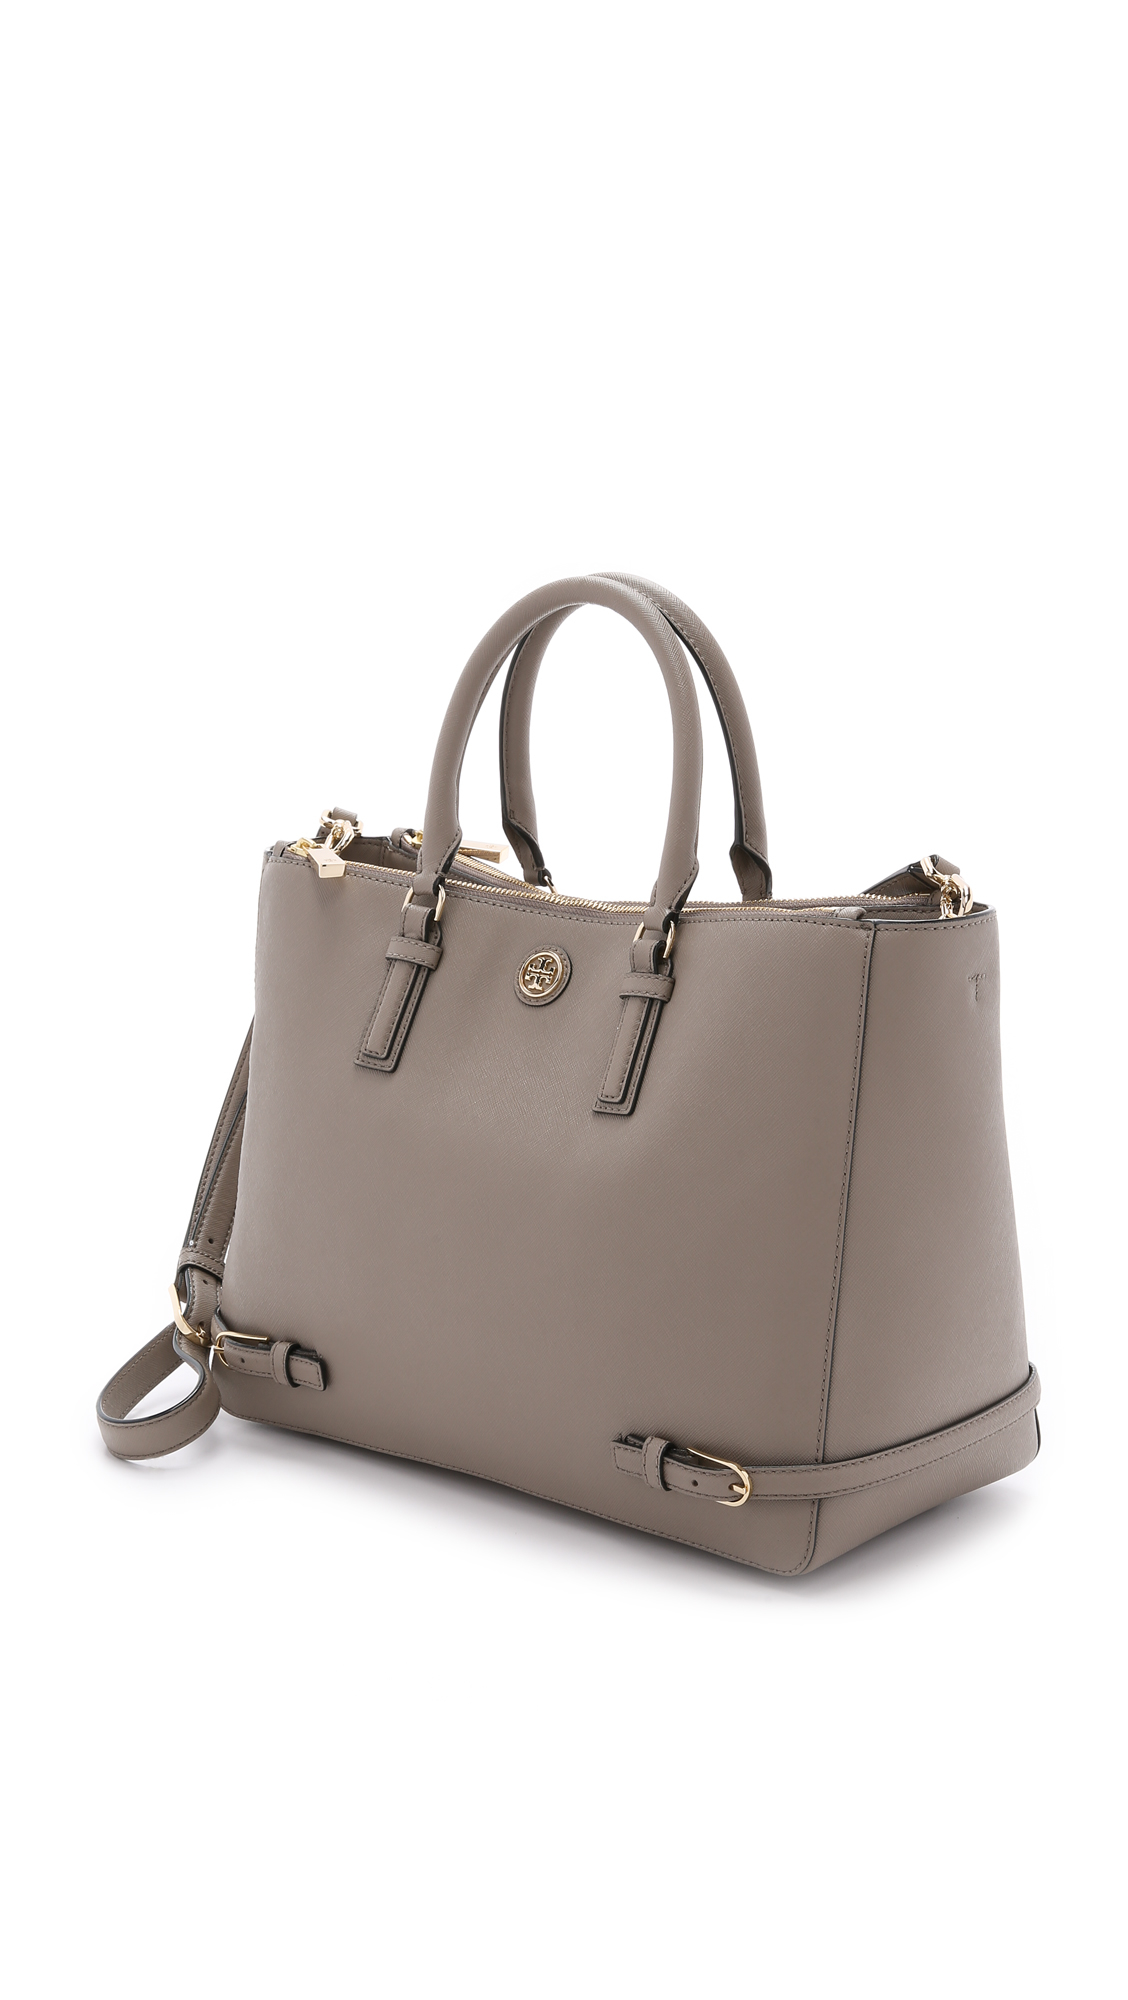 Tory burch Robinson Multi Tote - French Gray in Gray | Lyst